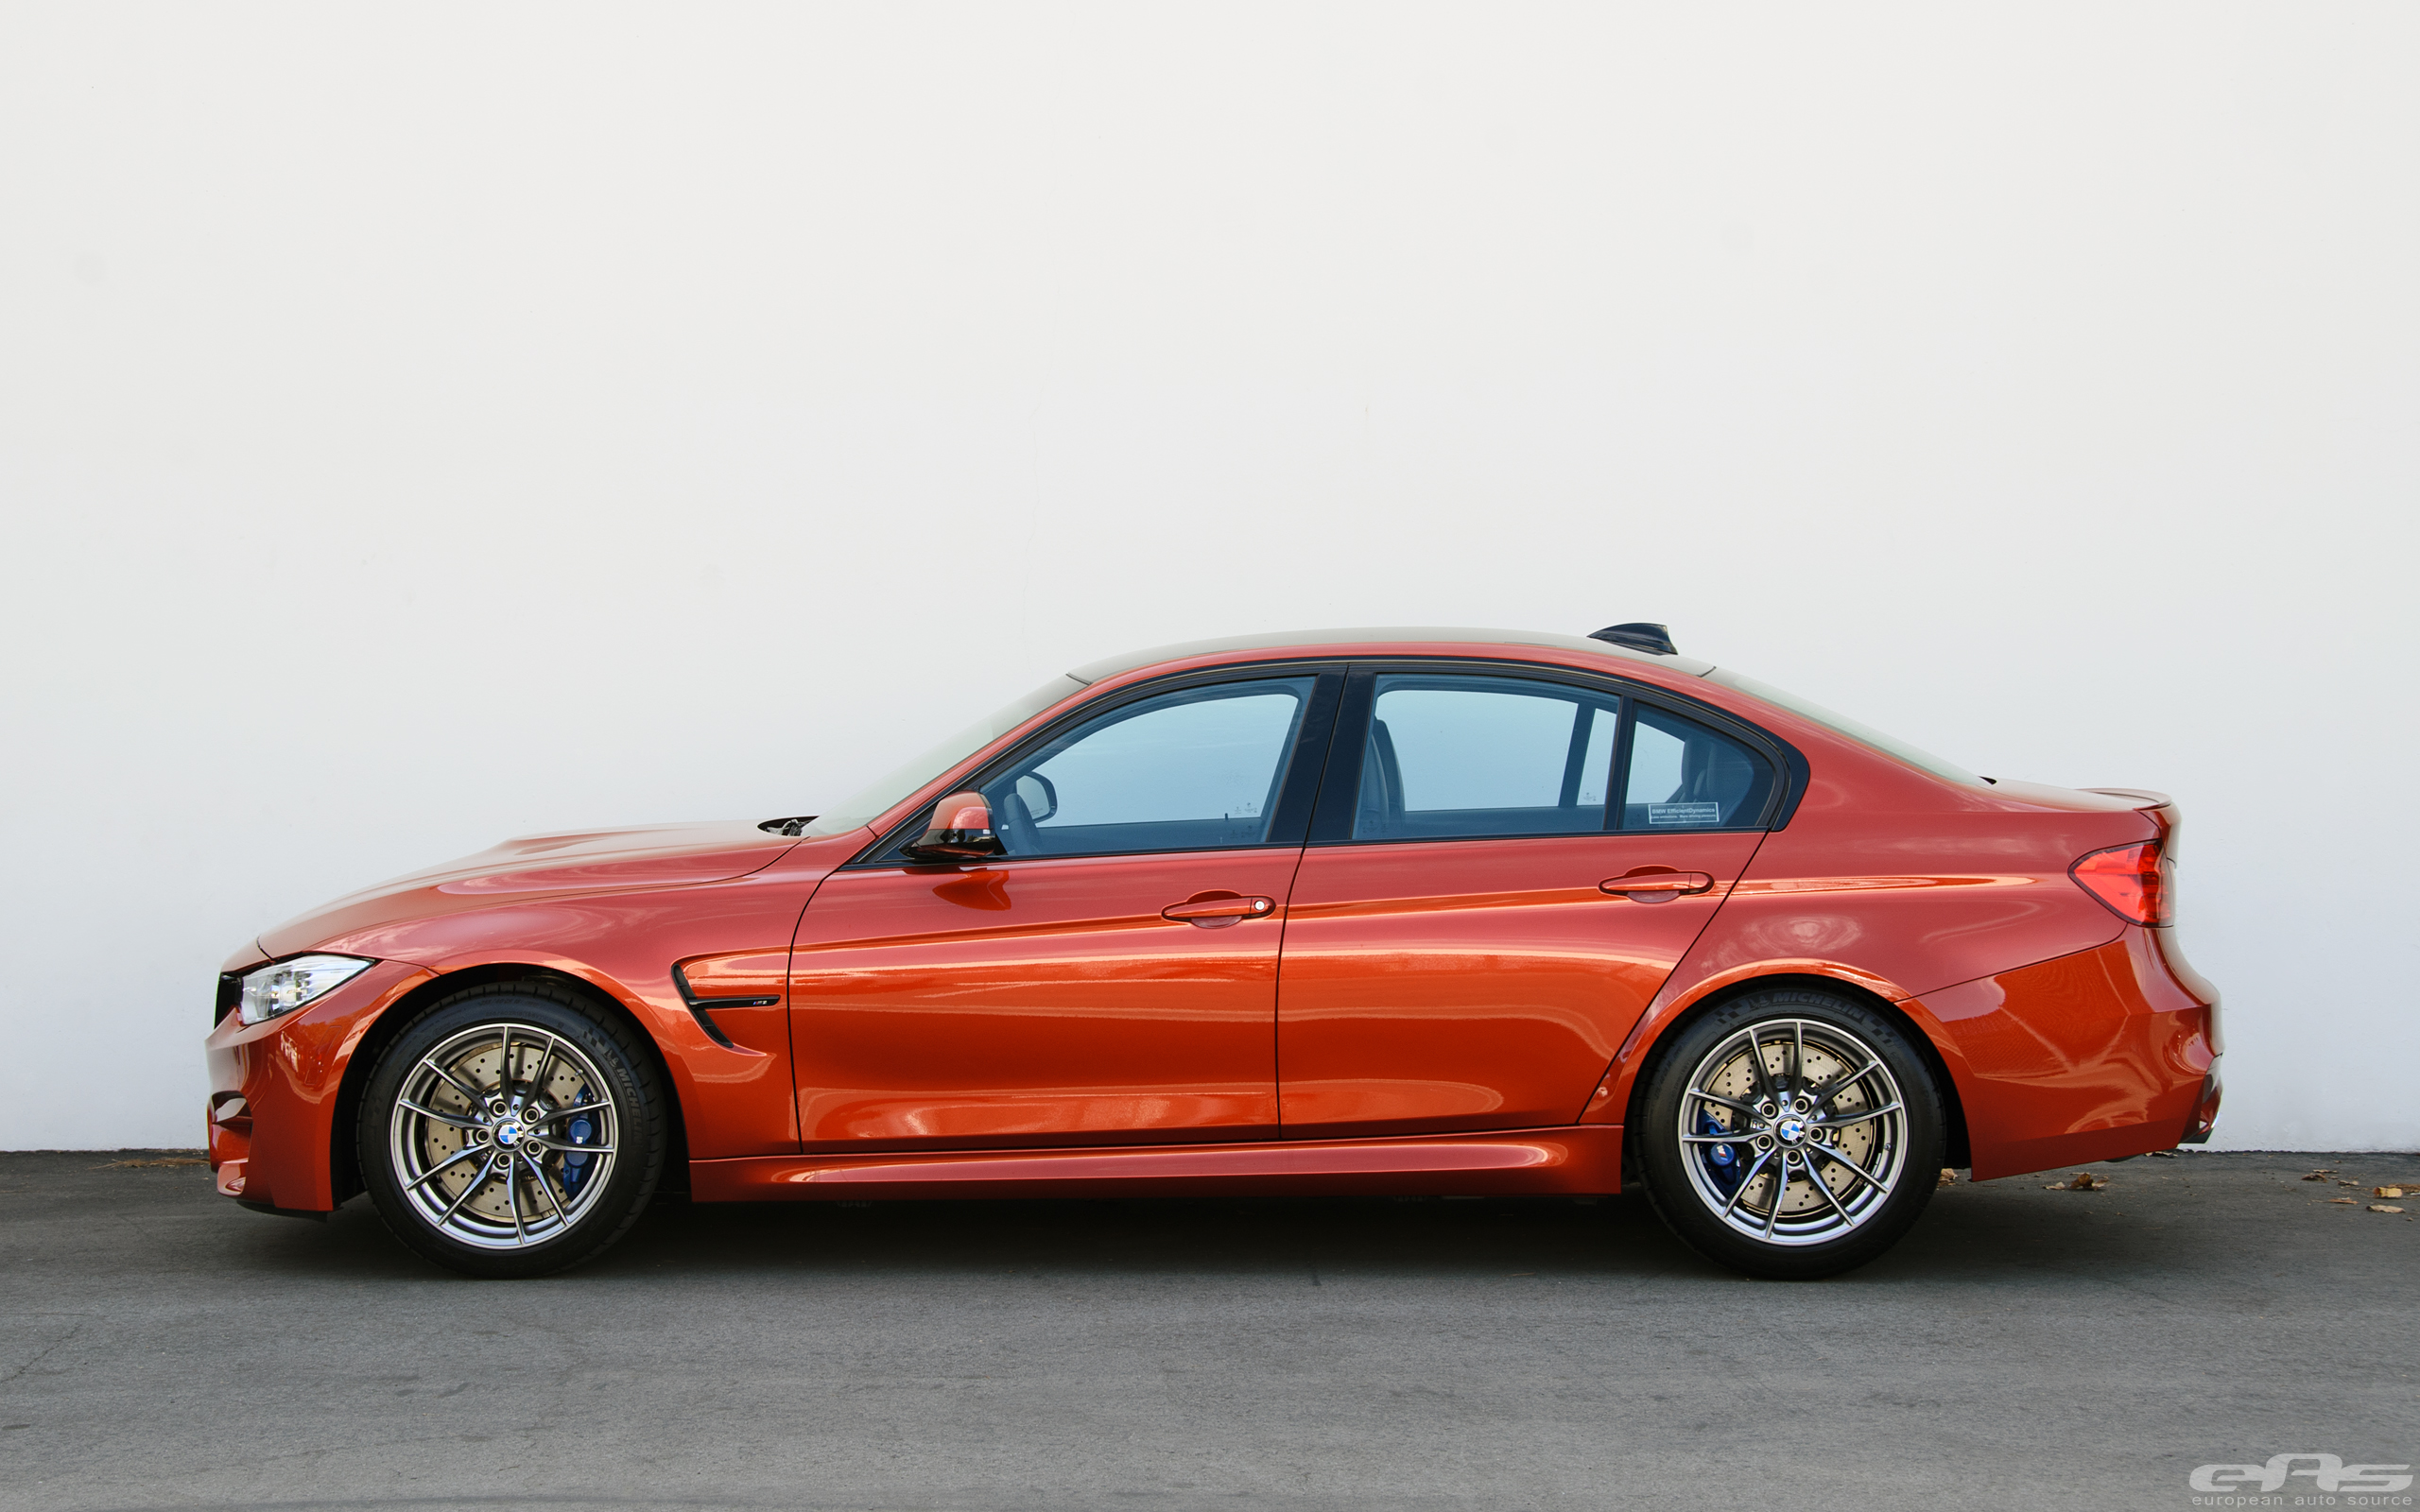 Interlagos Blue E46 M3 >> Sakhir Orange F80 M3 | BMW Performance Parts & Services